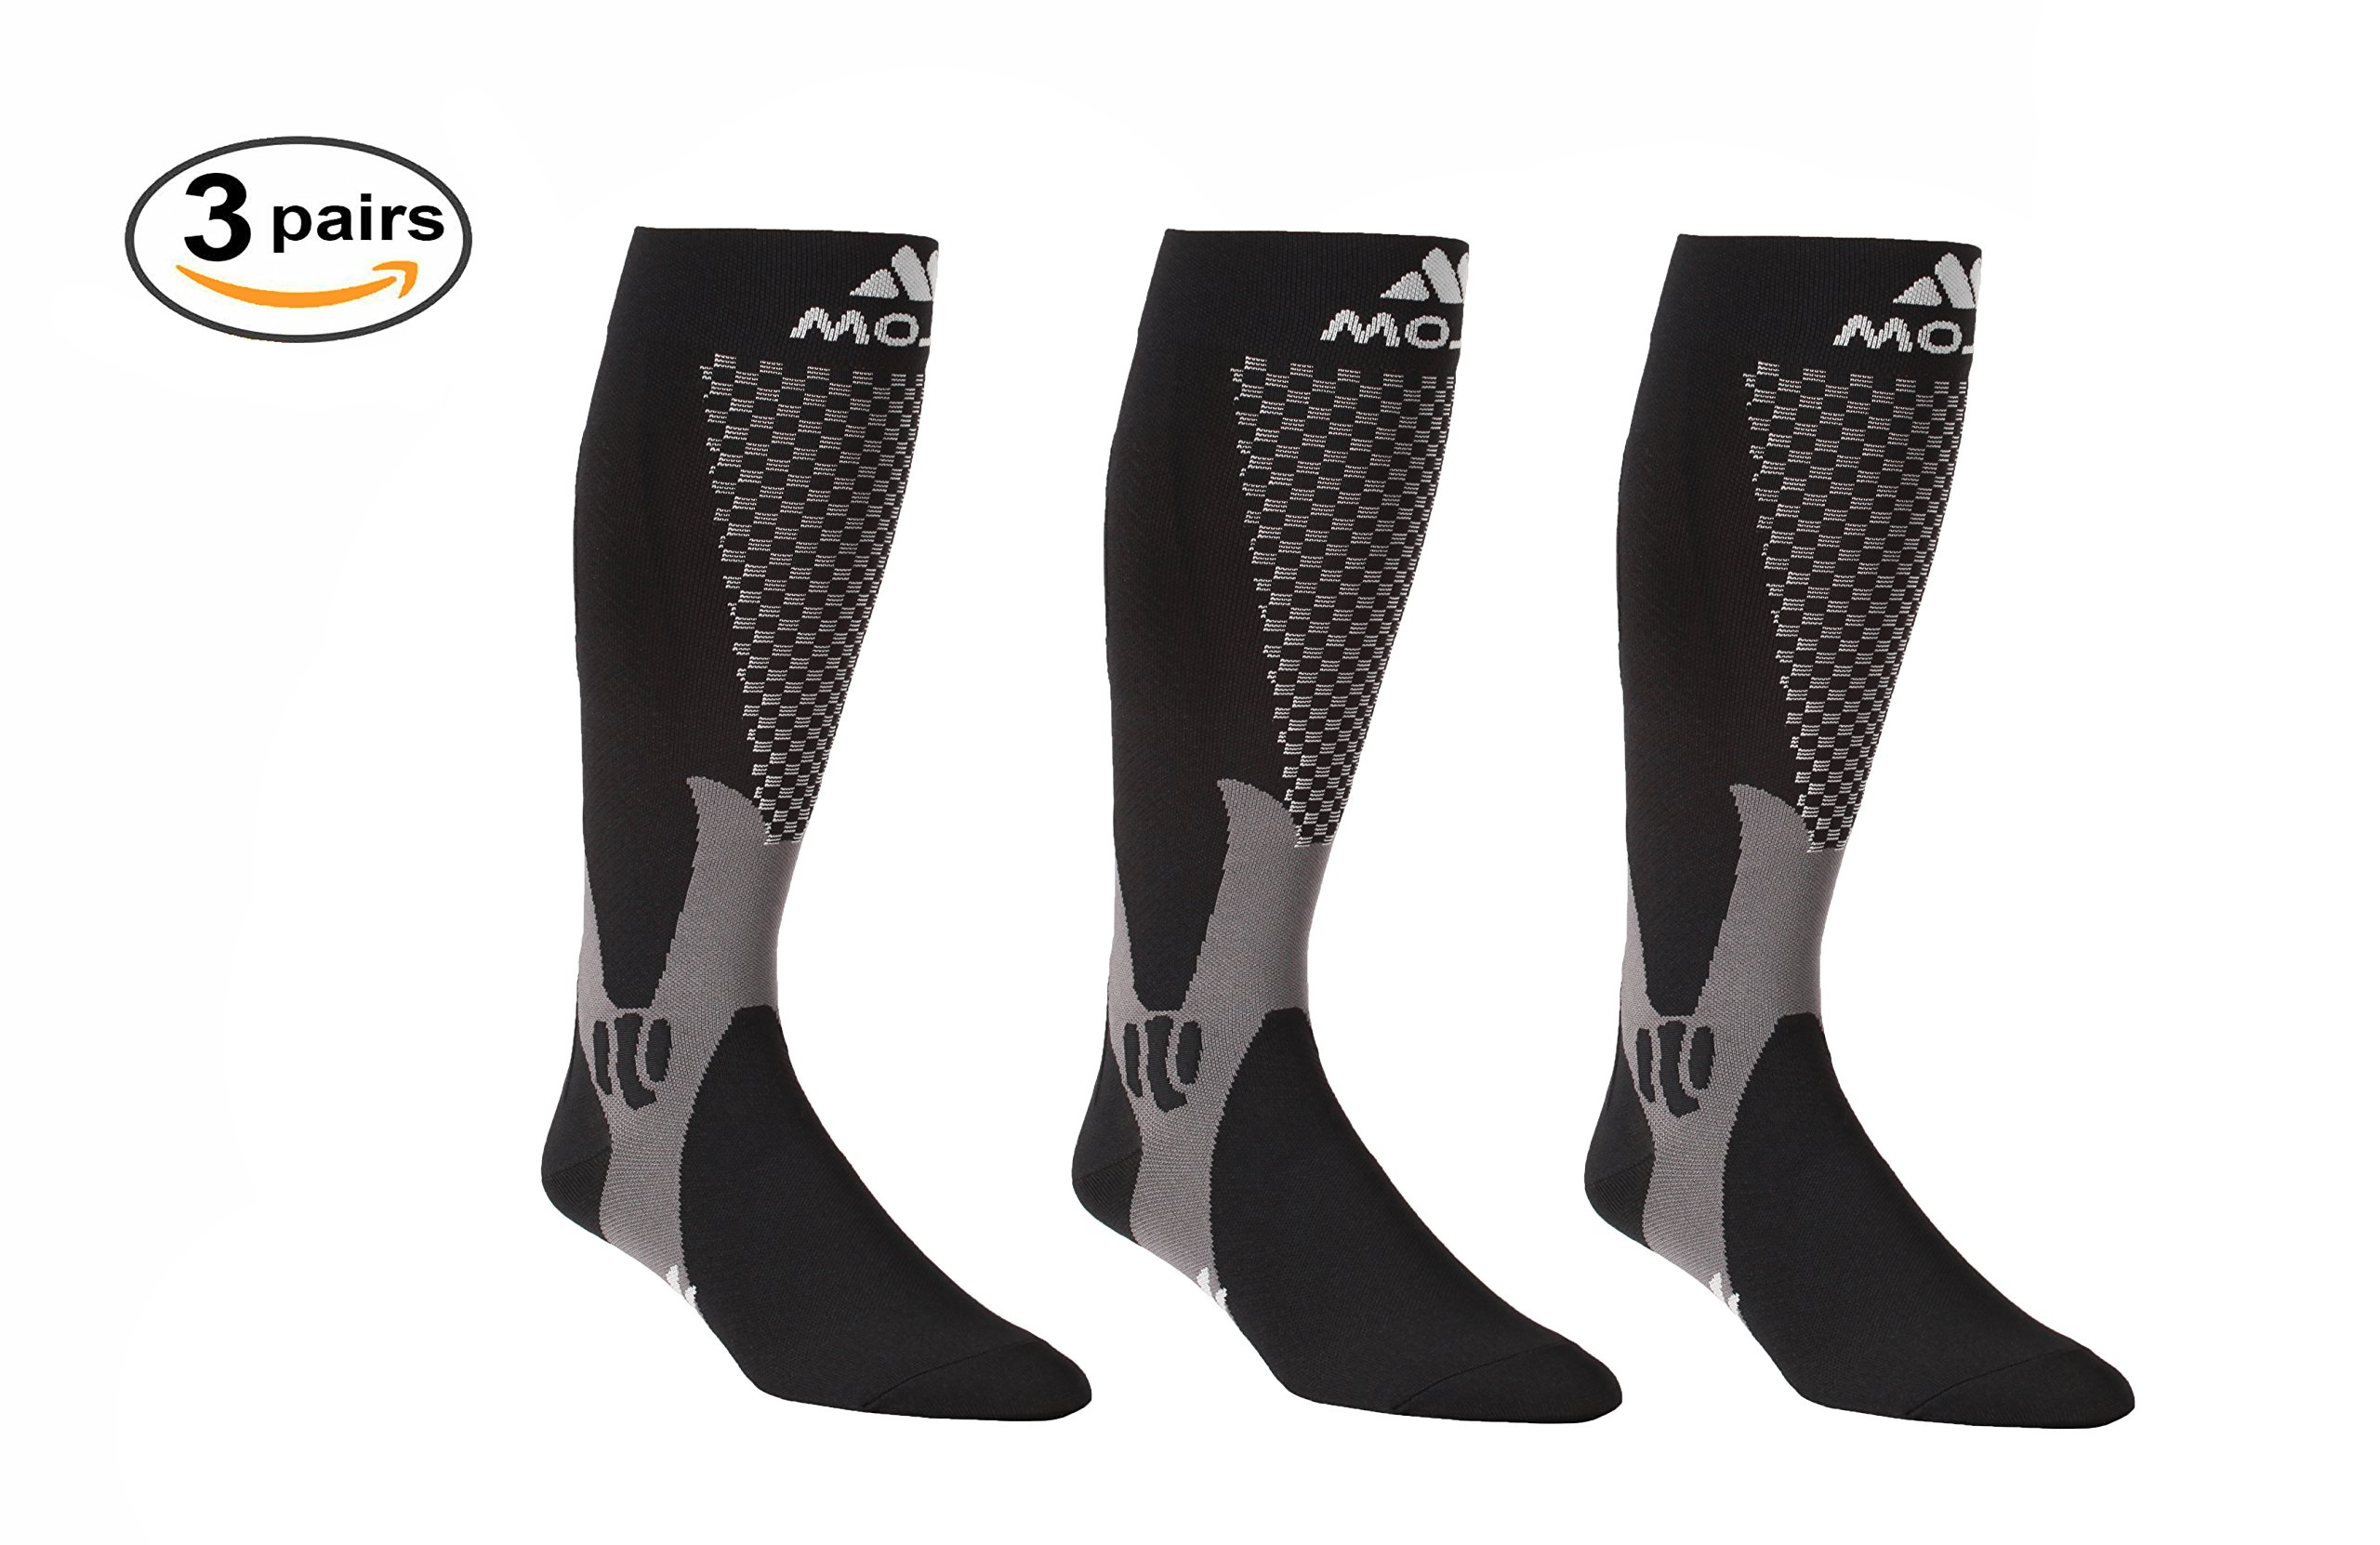 Mojo Recovery & Performance Compression Socks, 3 Pair Stockings, for Calf Strains, Running, Shin Splints, Varicose Veins, Injury Recovery & Prevention, Firm Support (20-30mmHg)(XXX-Large, 3 Black)